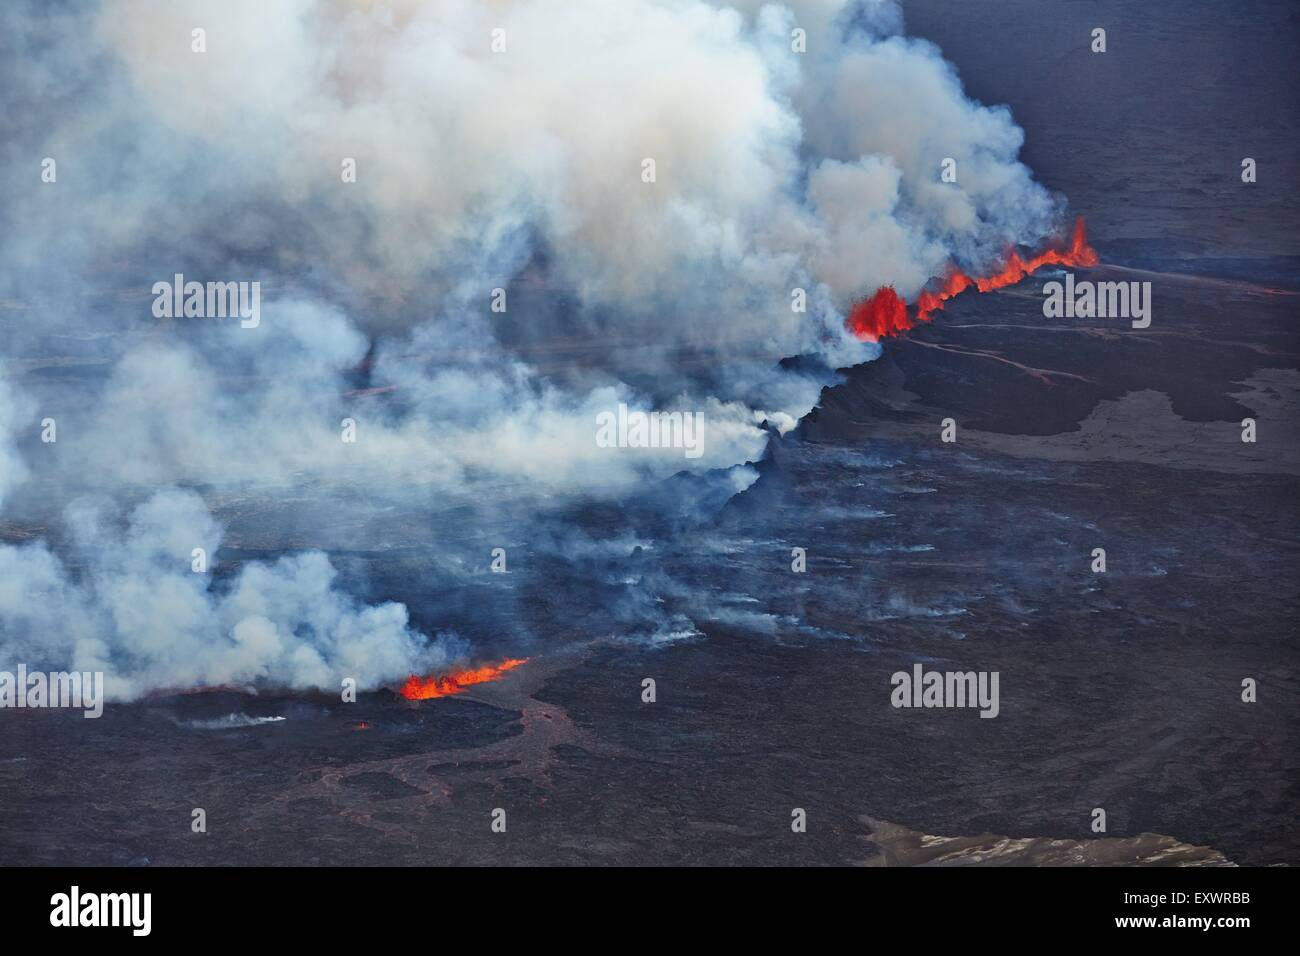 Volcano Bardarbunga, view on eruption at lava field Holuhraun at Sept 2nd 2014, Iceland - Stock Image